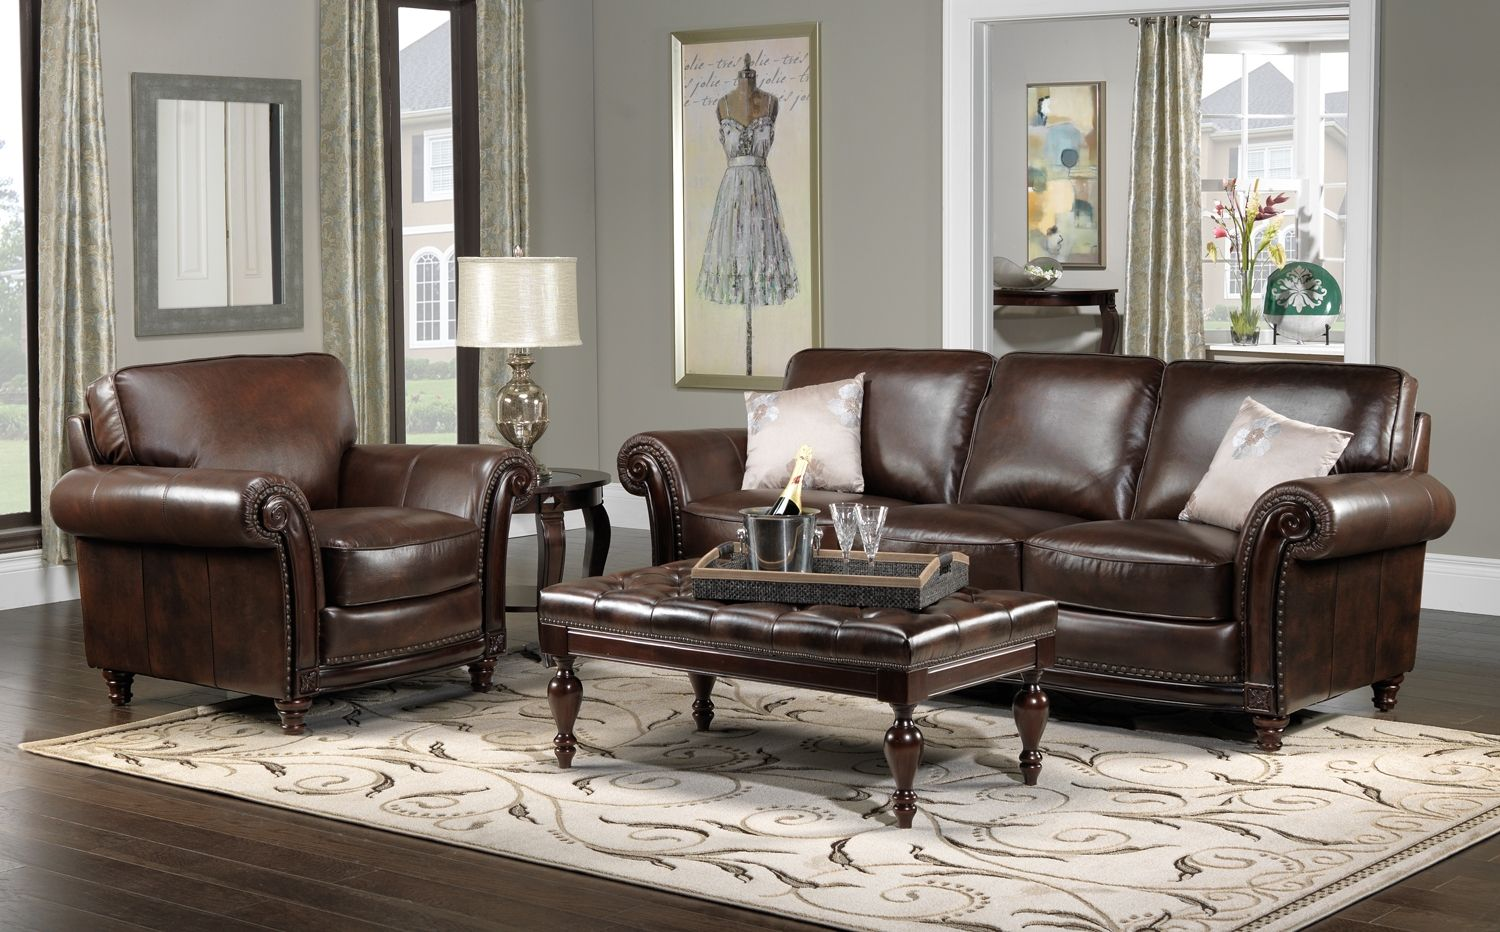 Dream House Decor Ideas For Brown Leather Furniture Gngkxz Decorating Ideas With Brown Leather